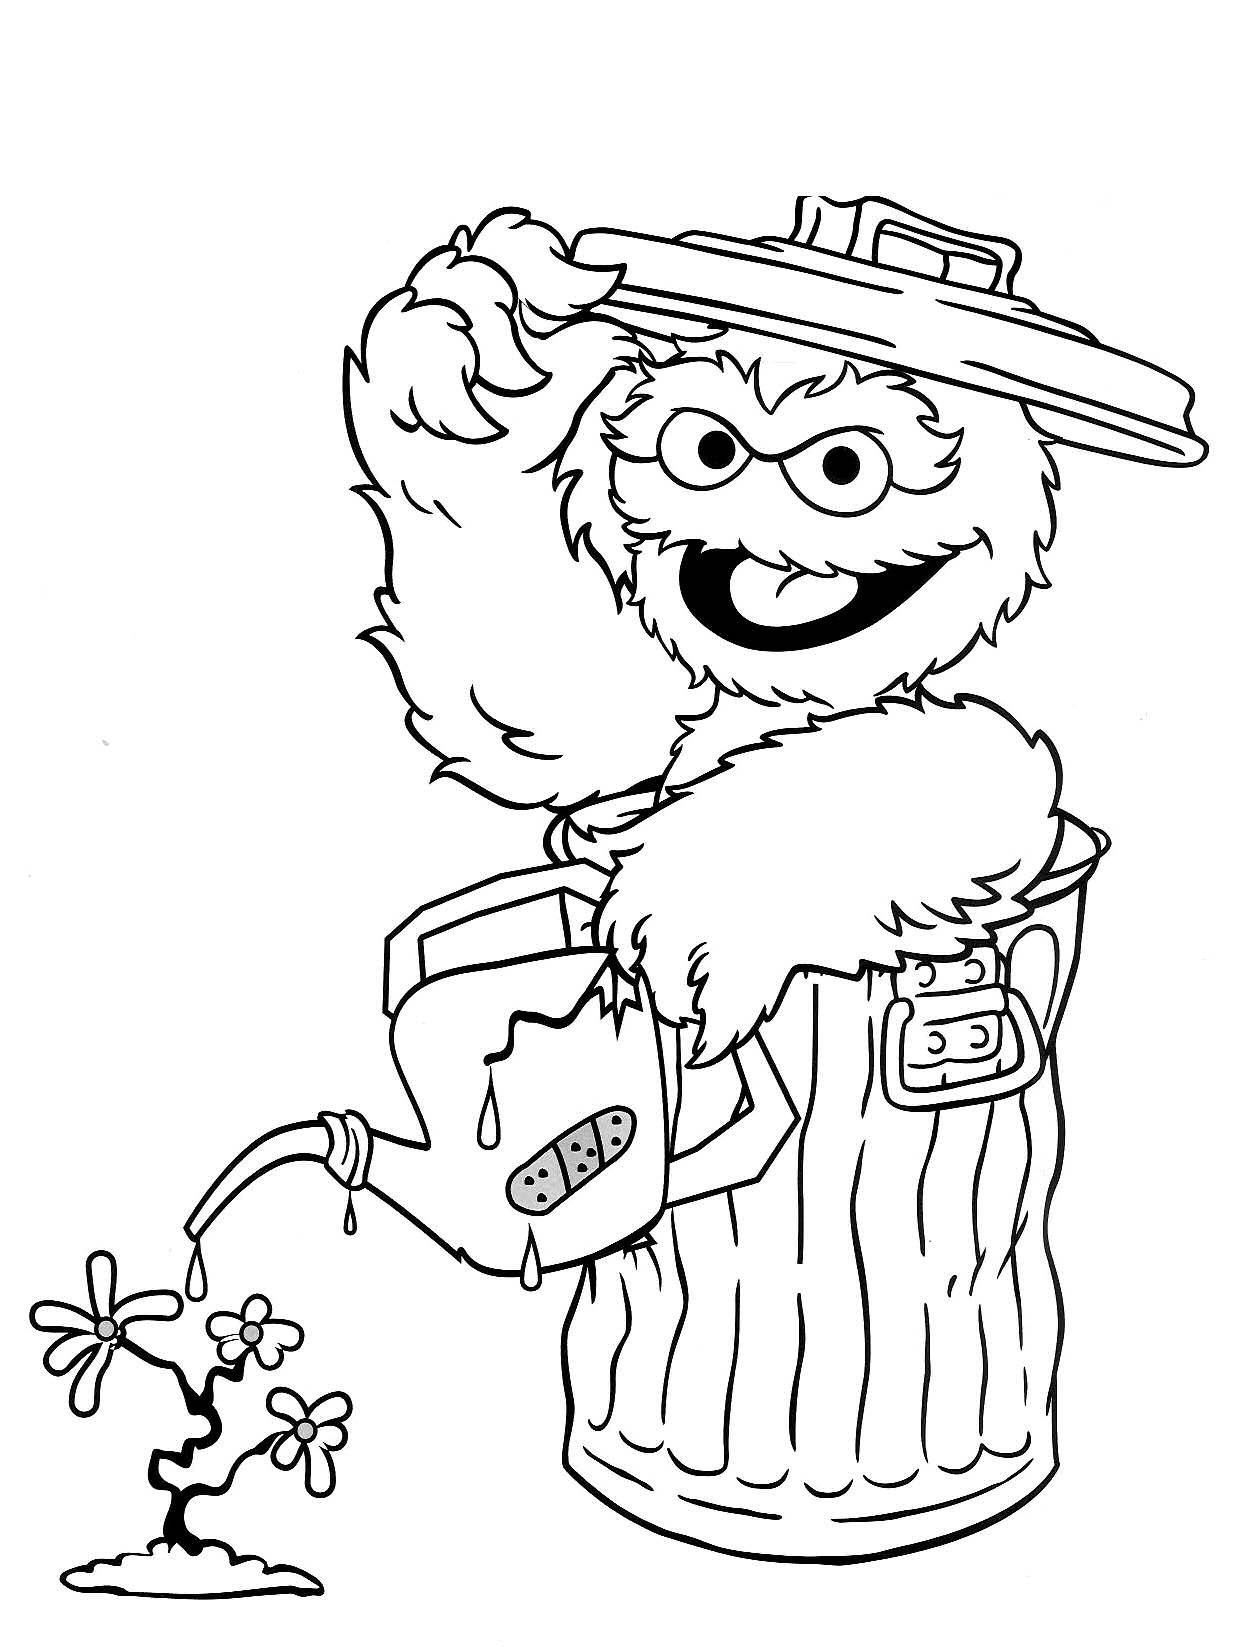 sesame street character coloring pages - photo#22